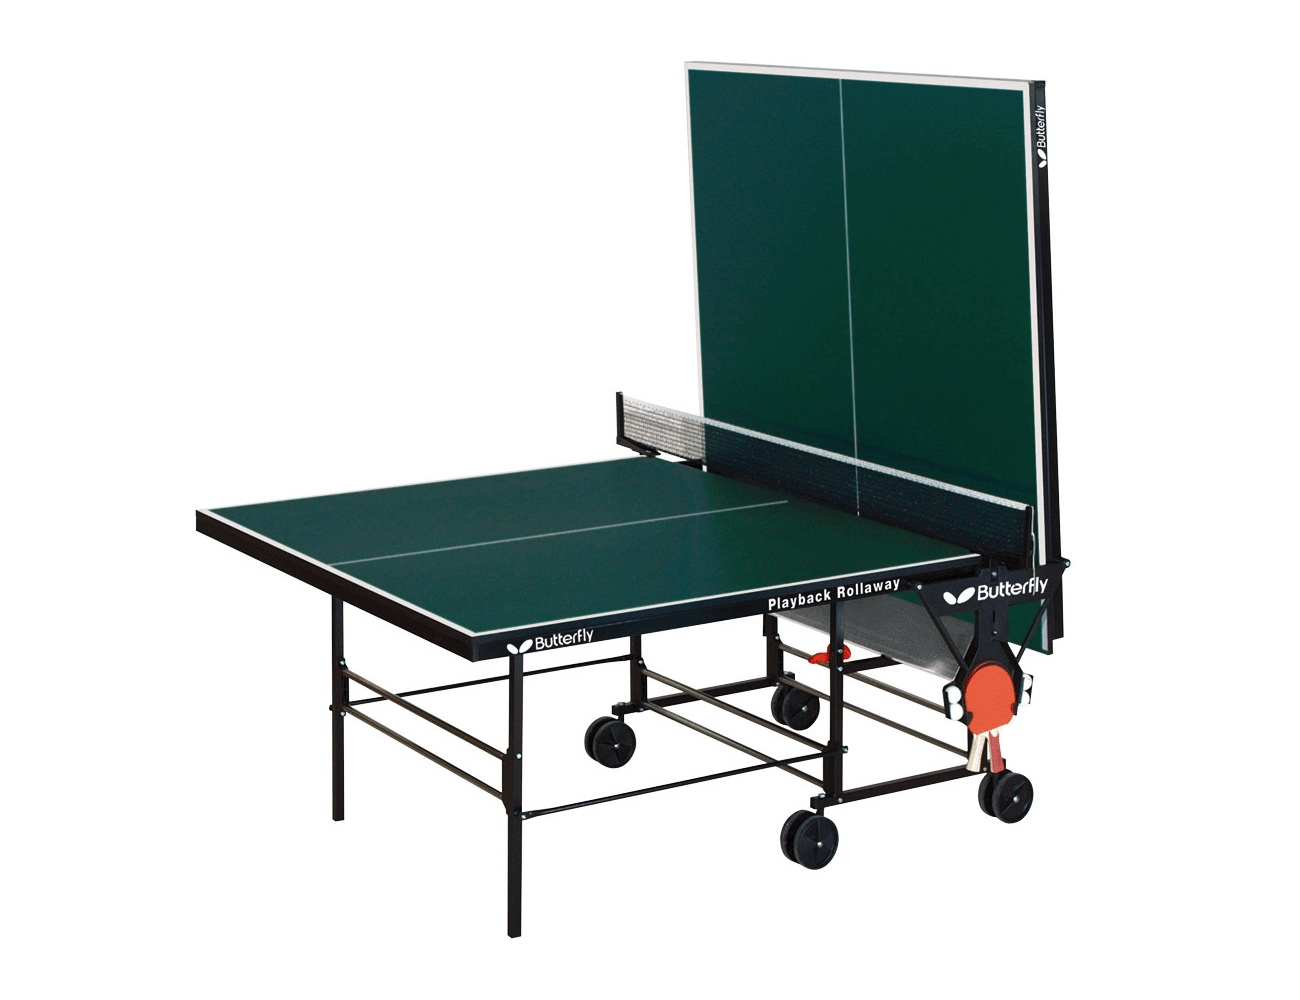 Charming Butterfly Playback Rollaway Table Tennis Table